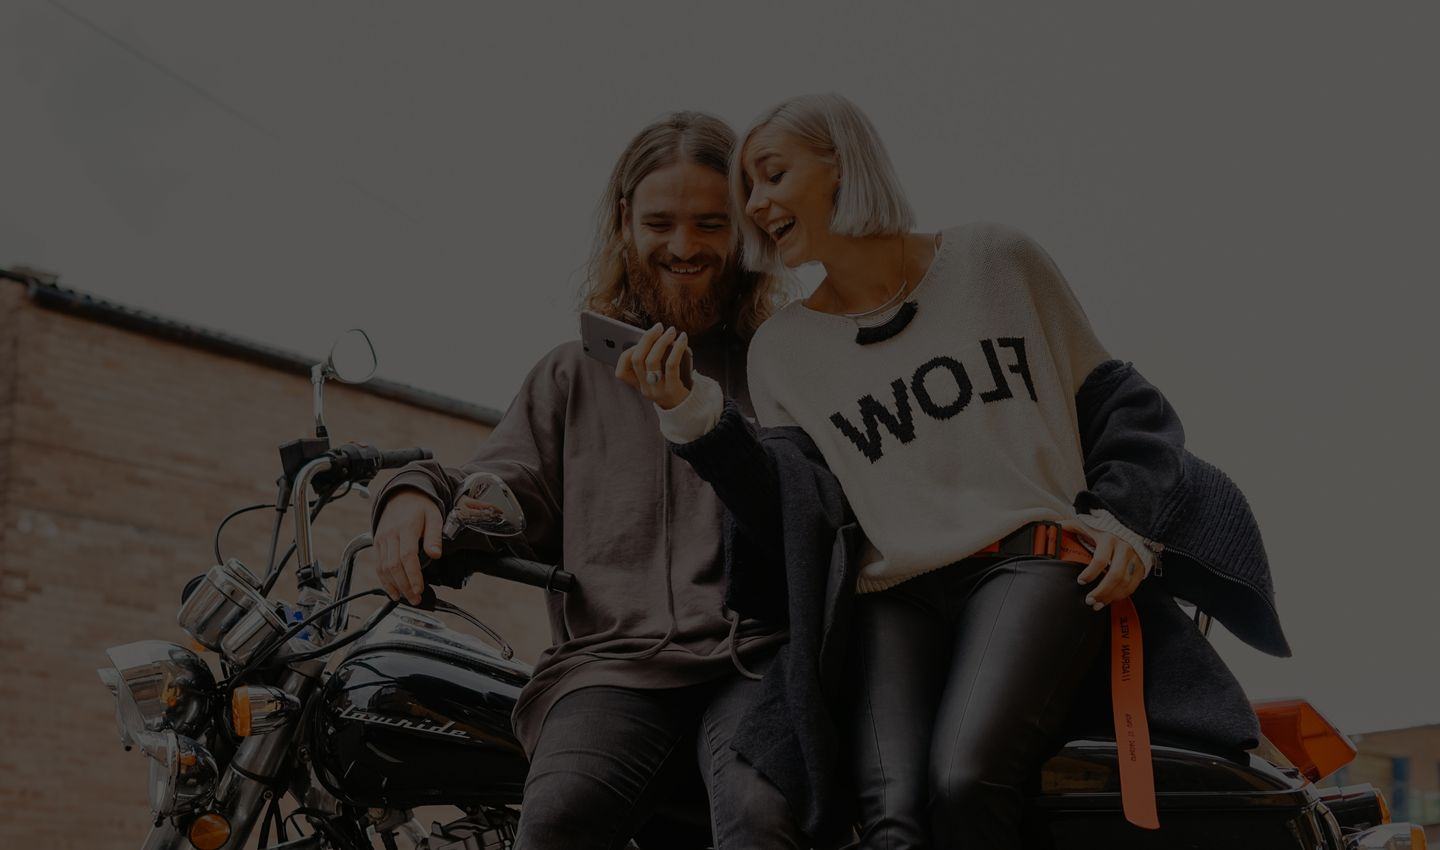 Photo d'un couple souriant sur une moto en regardant un smartphone